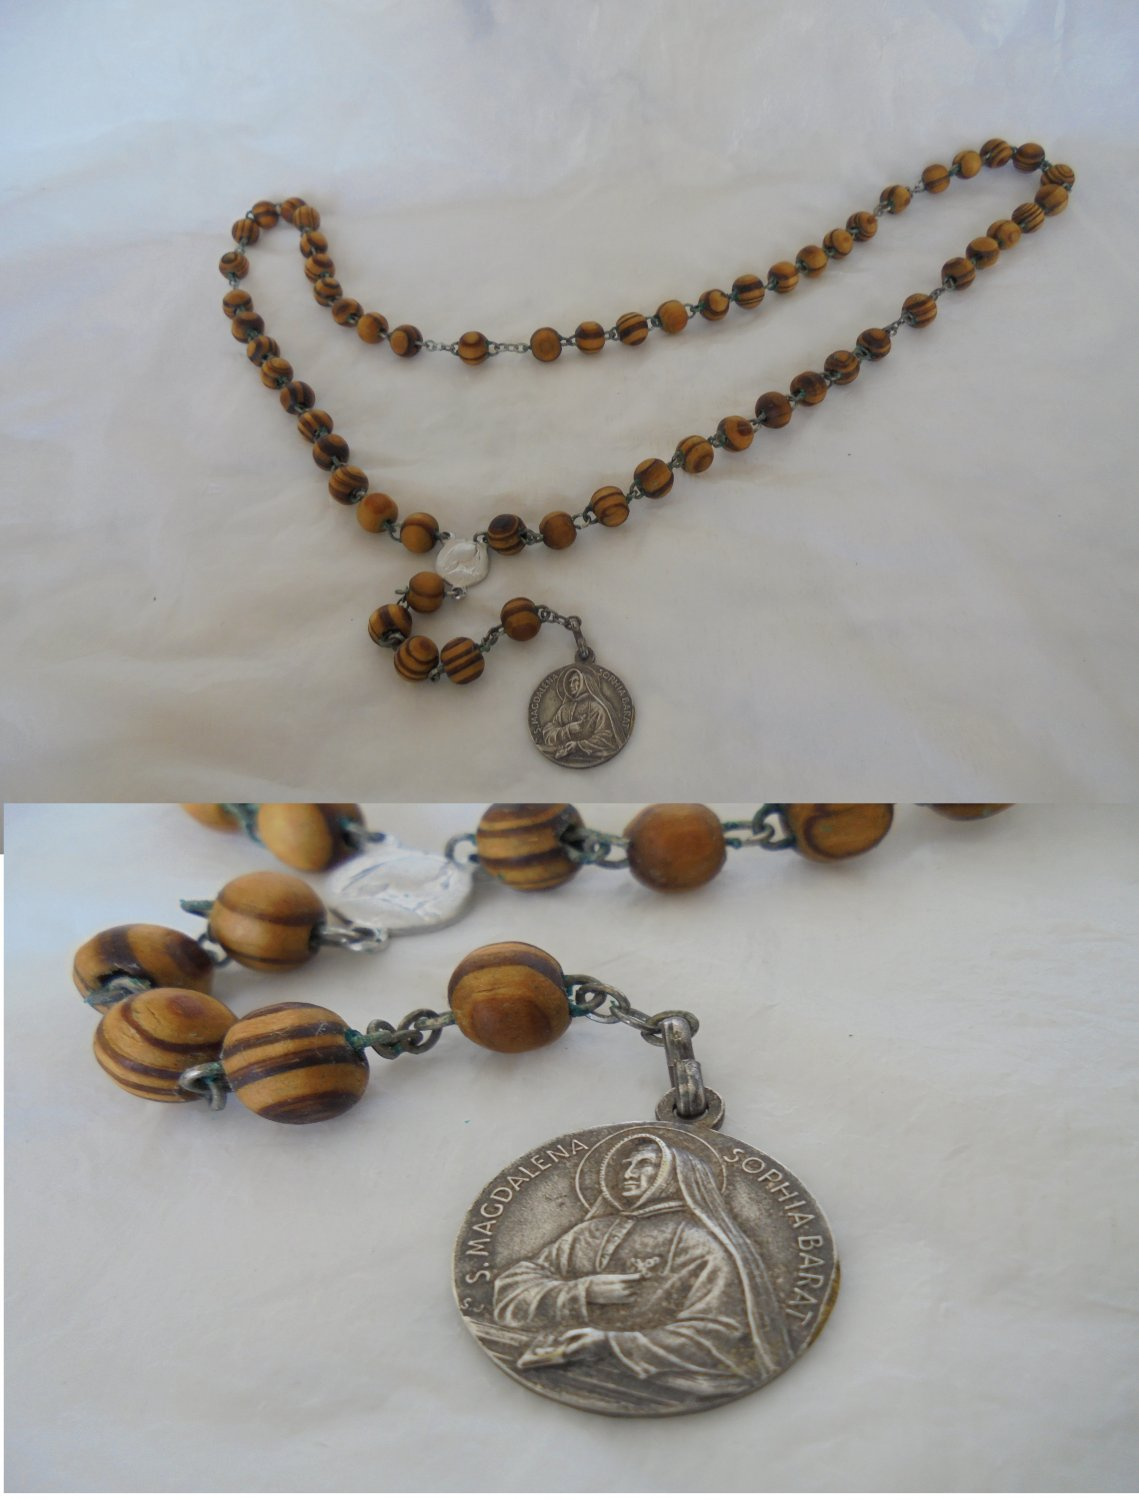 Praying rosary in olive wood and in silver 800 of Saint Madeleine Sophie Barat